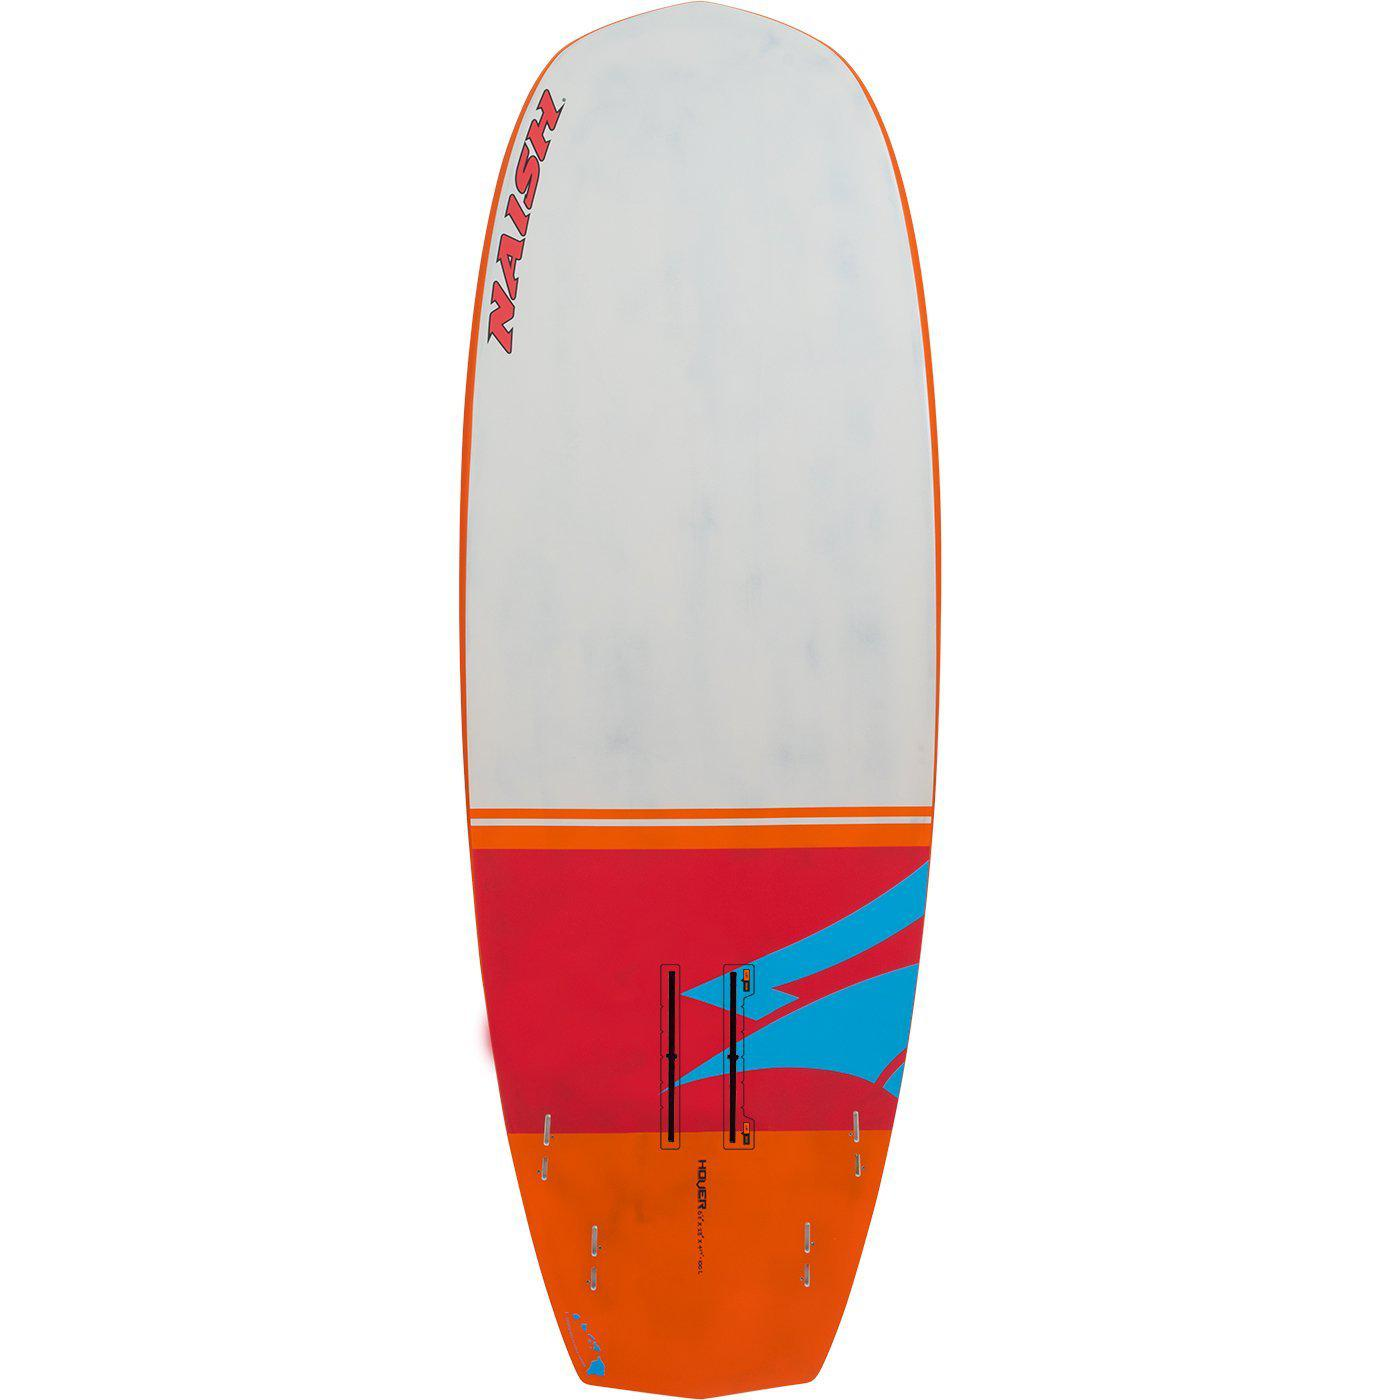 2020 Naish Hover SUP Foil Board-Big Winds